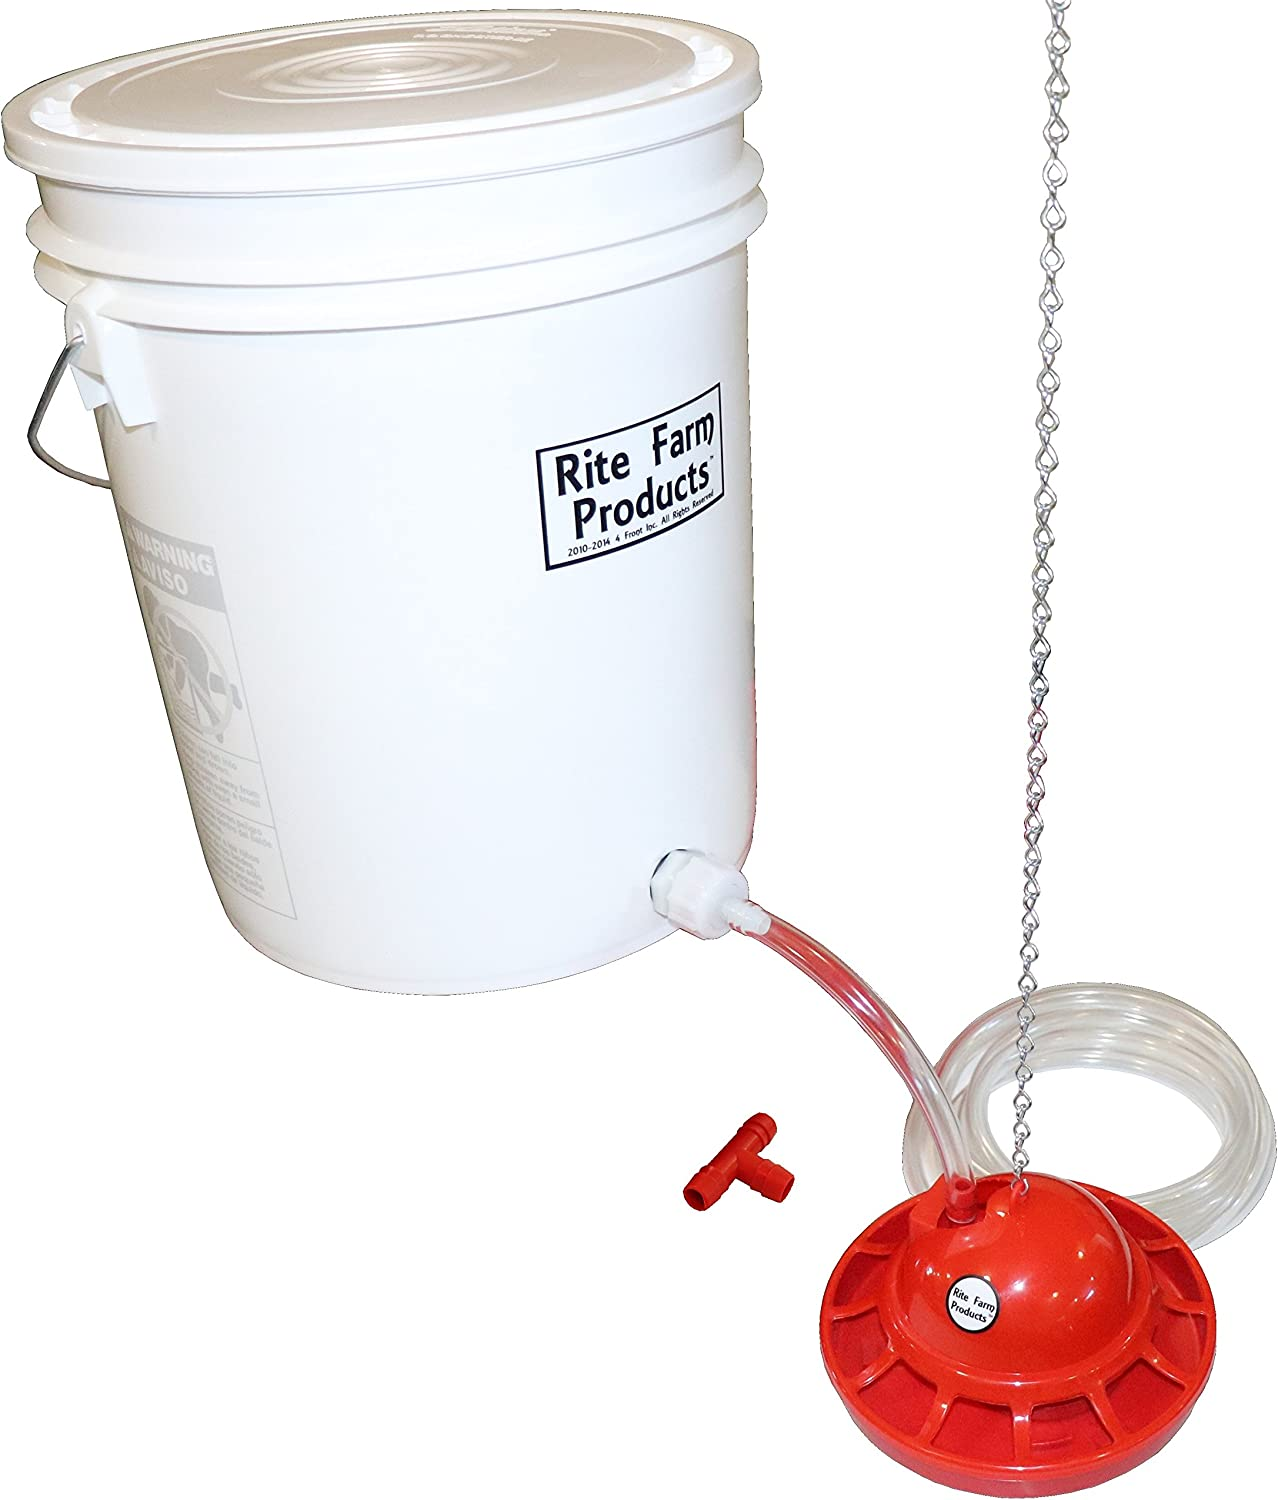 RITE OFFicial shop FARM PRODUCTS AUTO PRO Seattle Mall CHICK CHICKEN D WATERER KIT COMPLETE